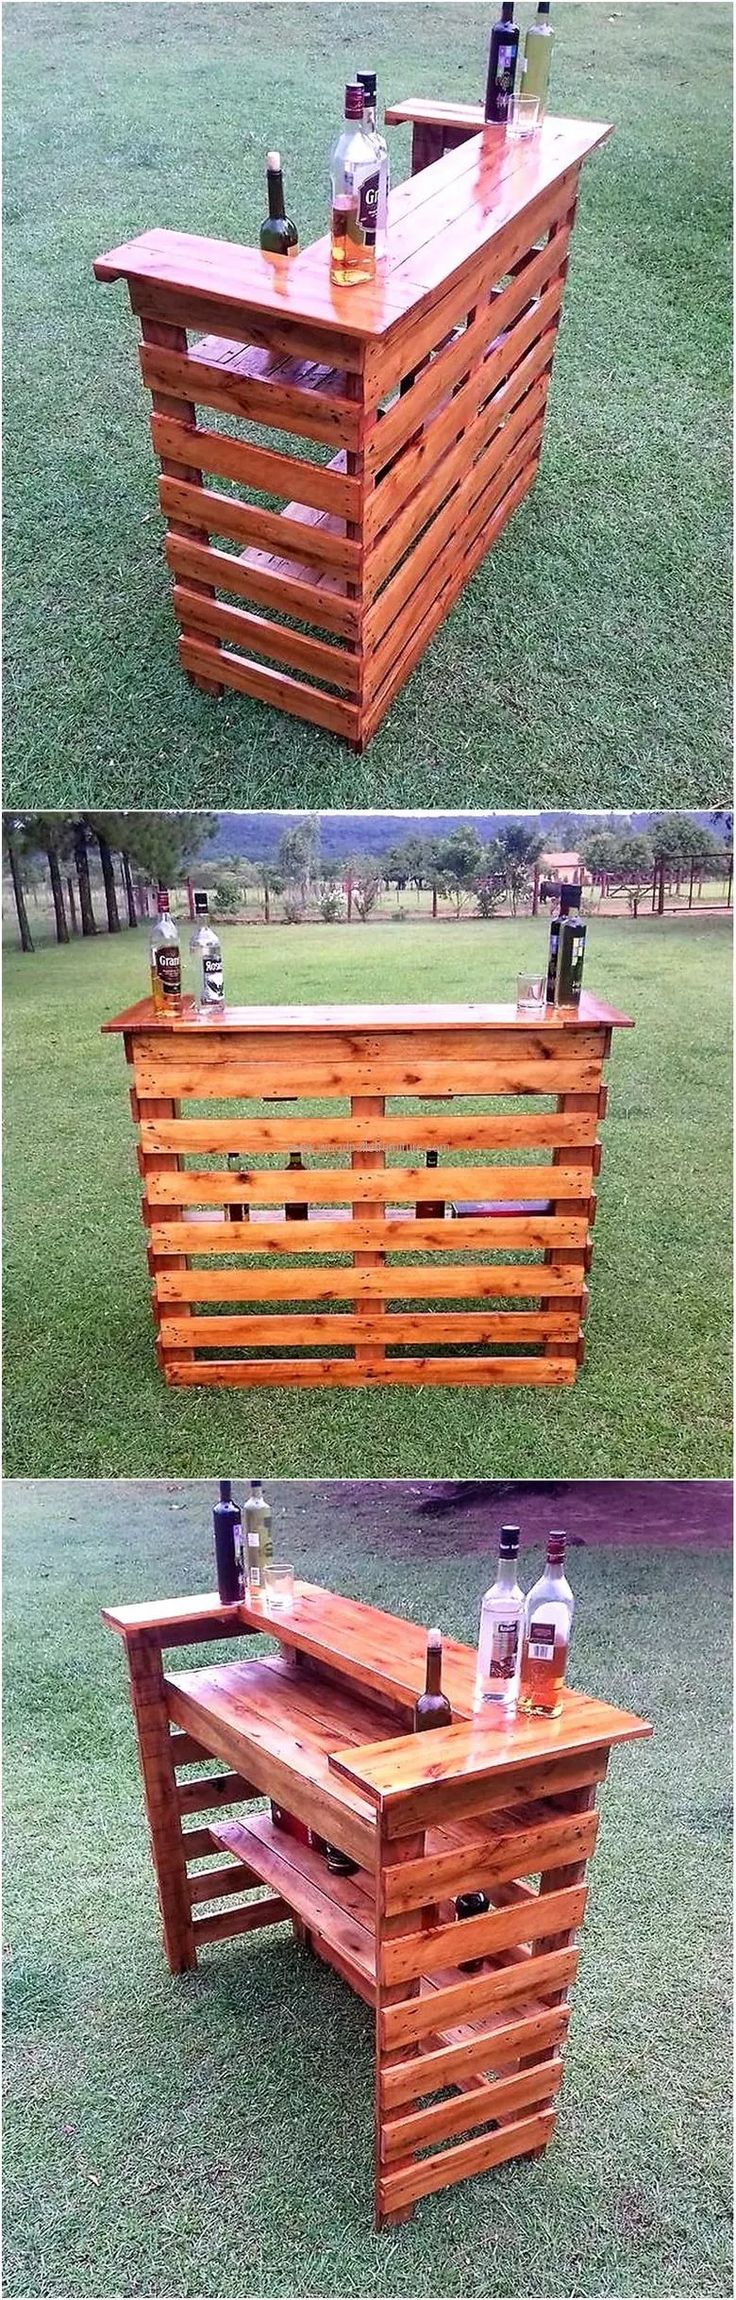 25 best ideas about pallets on pinterest pallet ideas for Outdoor wood projects ideas